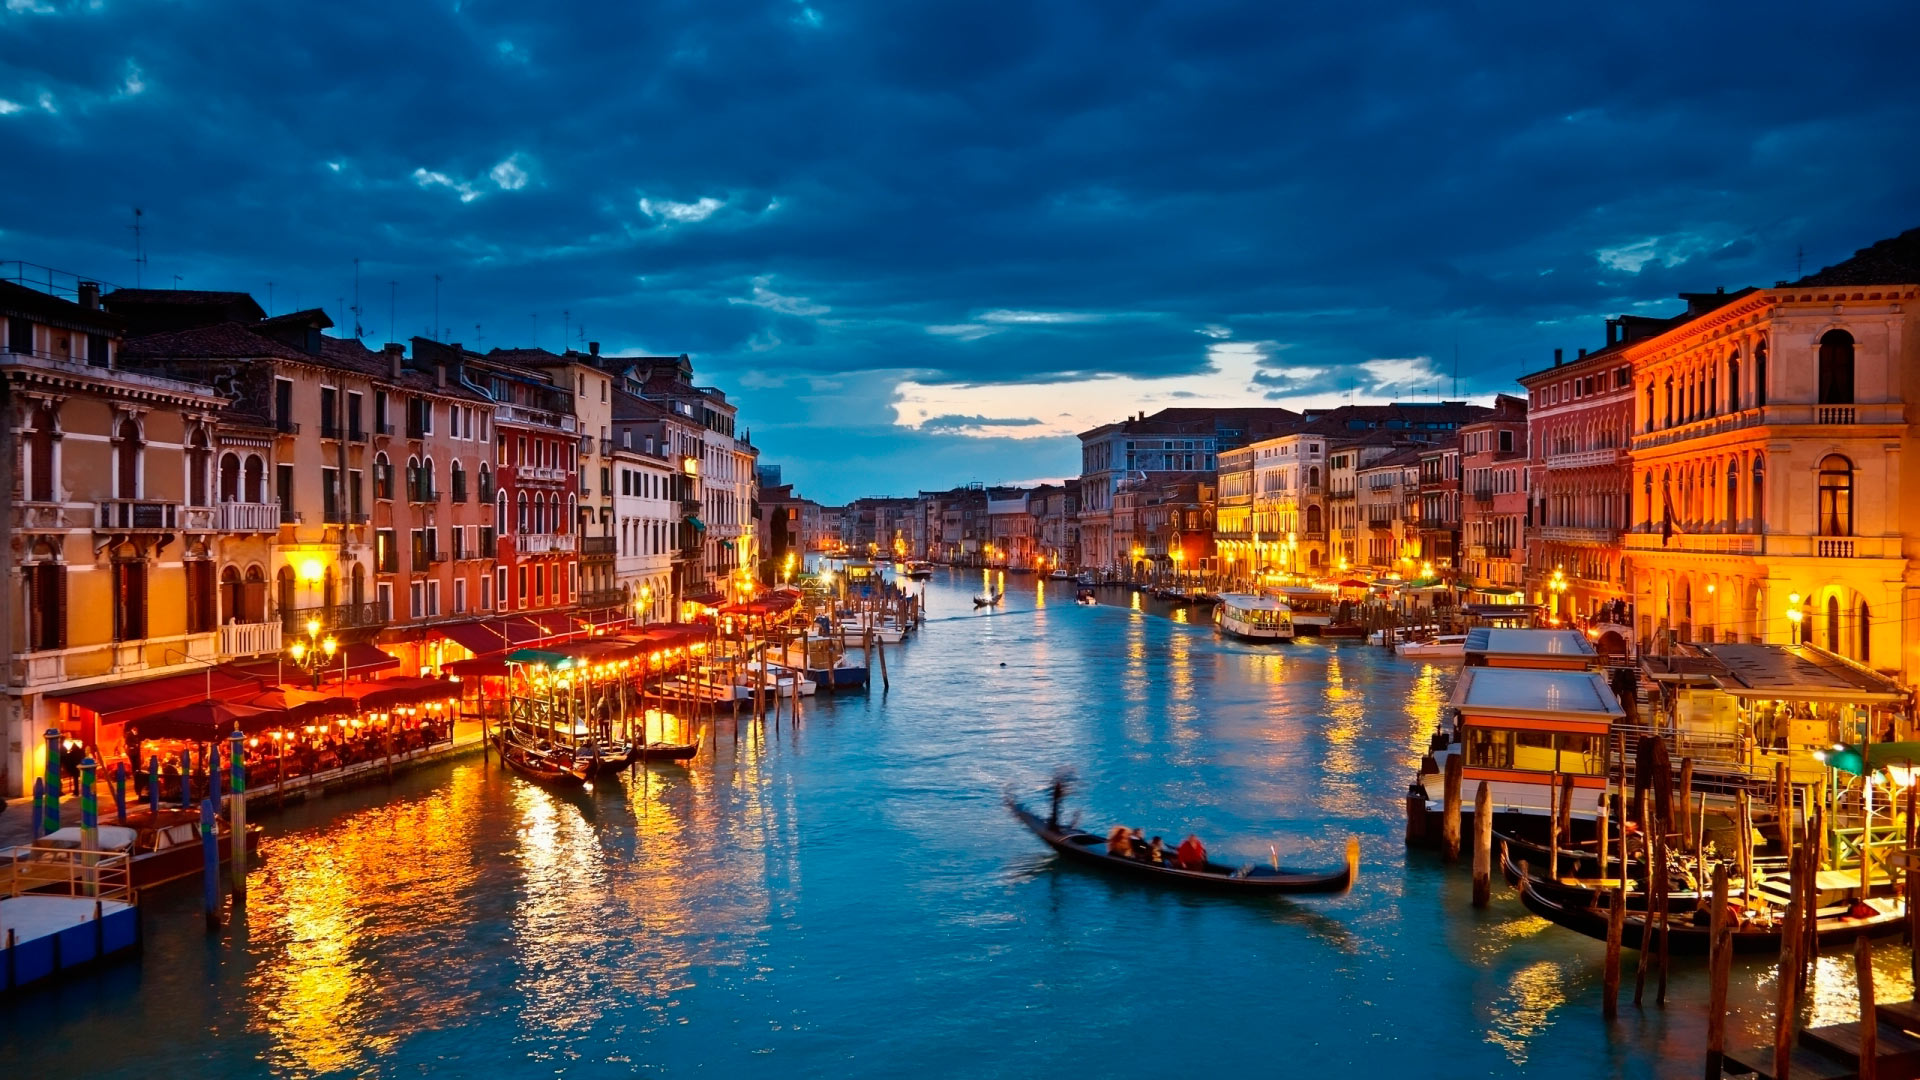 Venice At Night Wallpaper